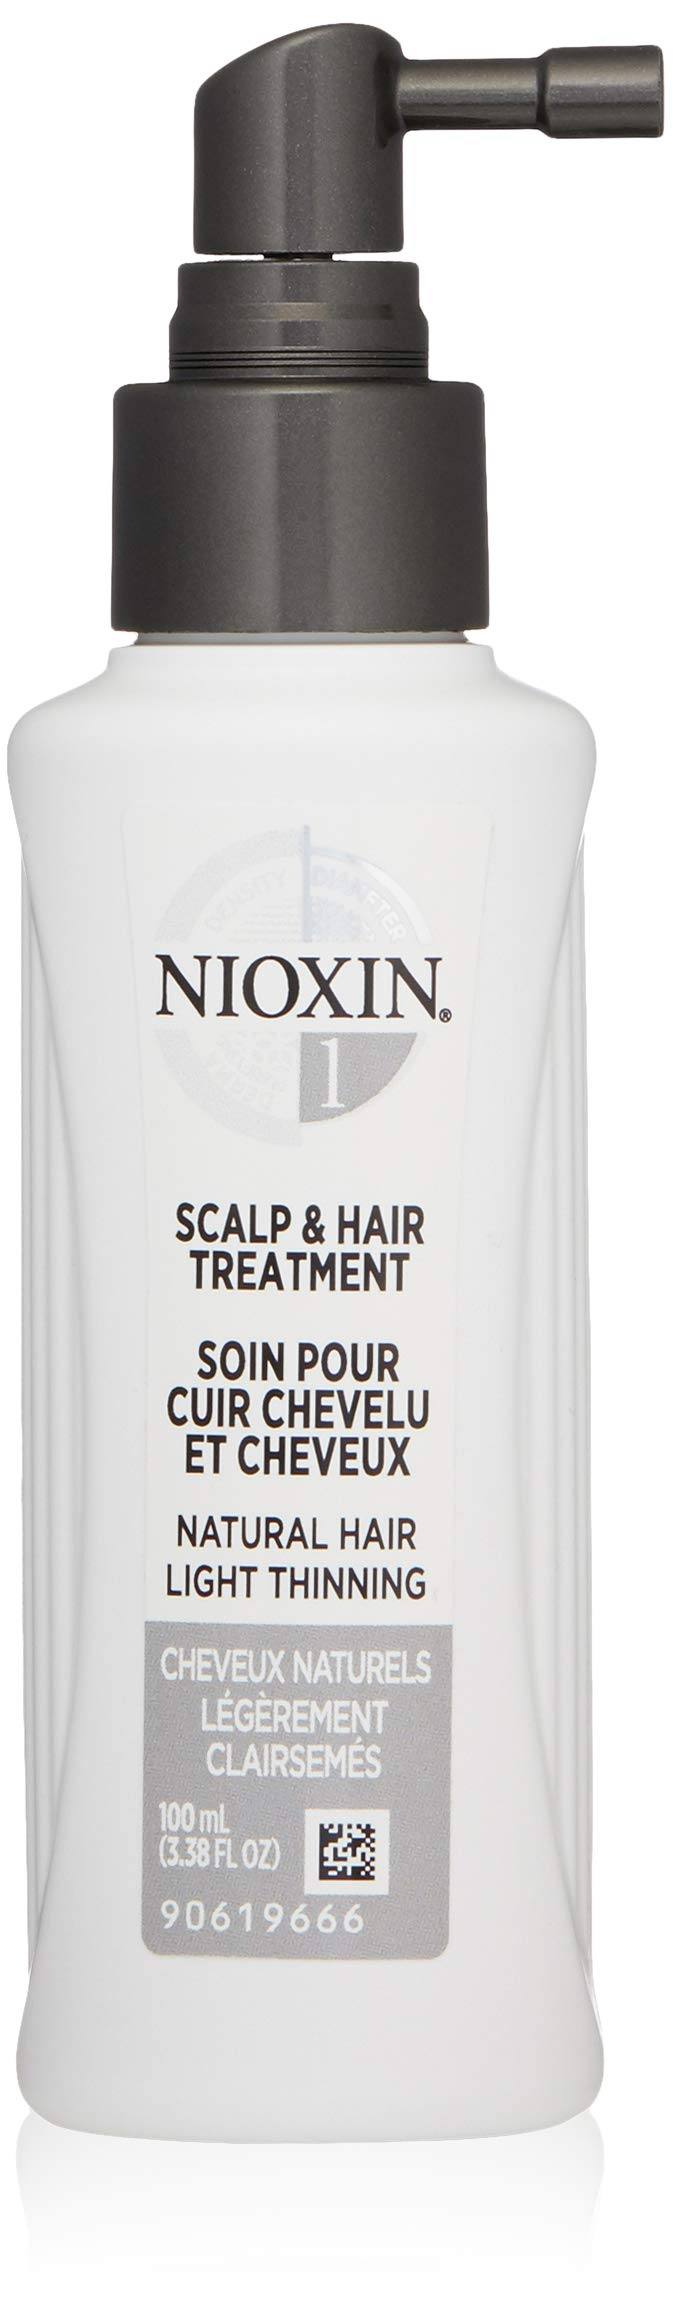 Nioxin Scalp and Hair Leave-In Treatment System 1 for Fine Hair with Light Thinning, 3.4 Ounce